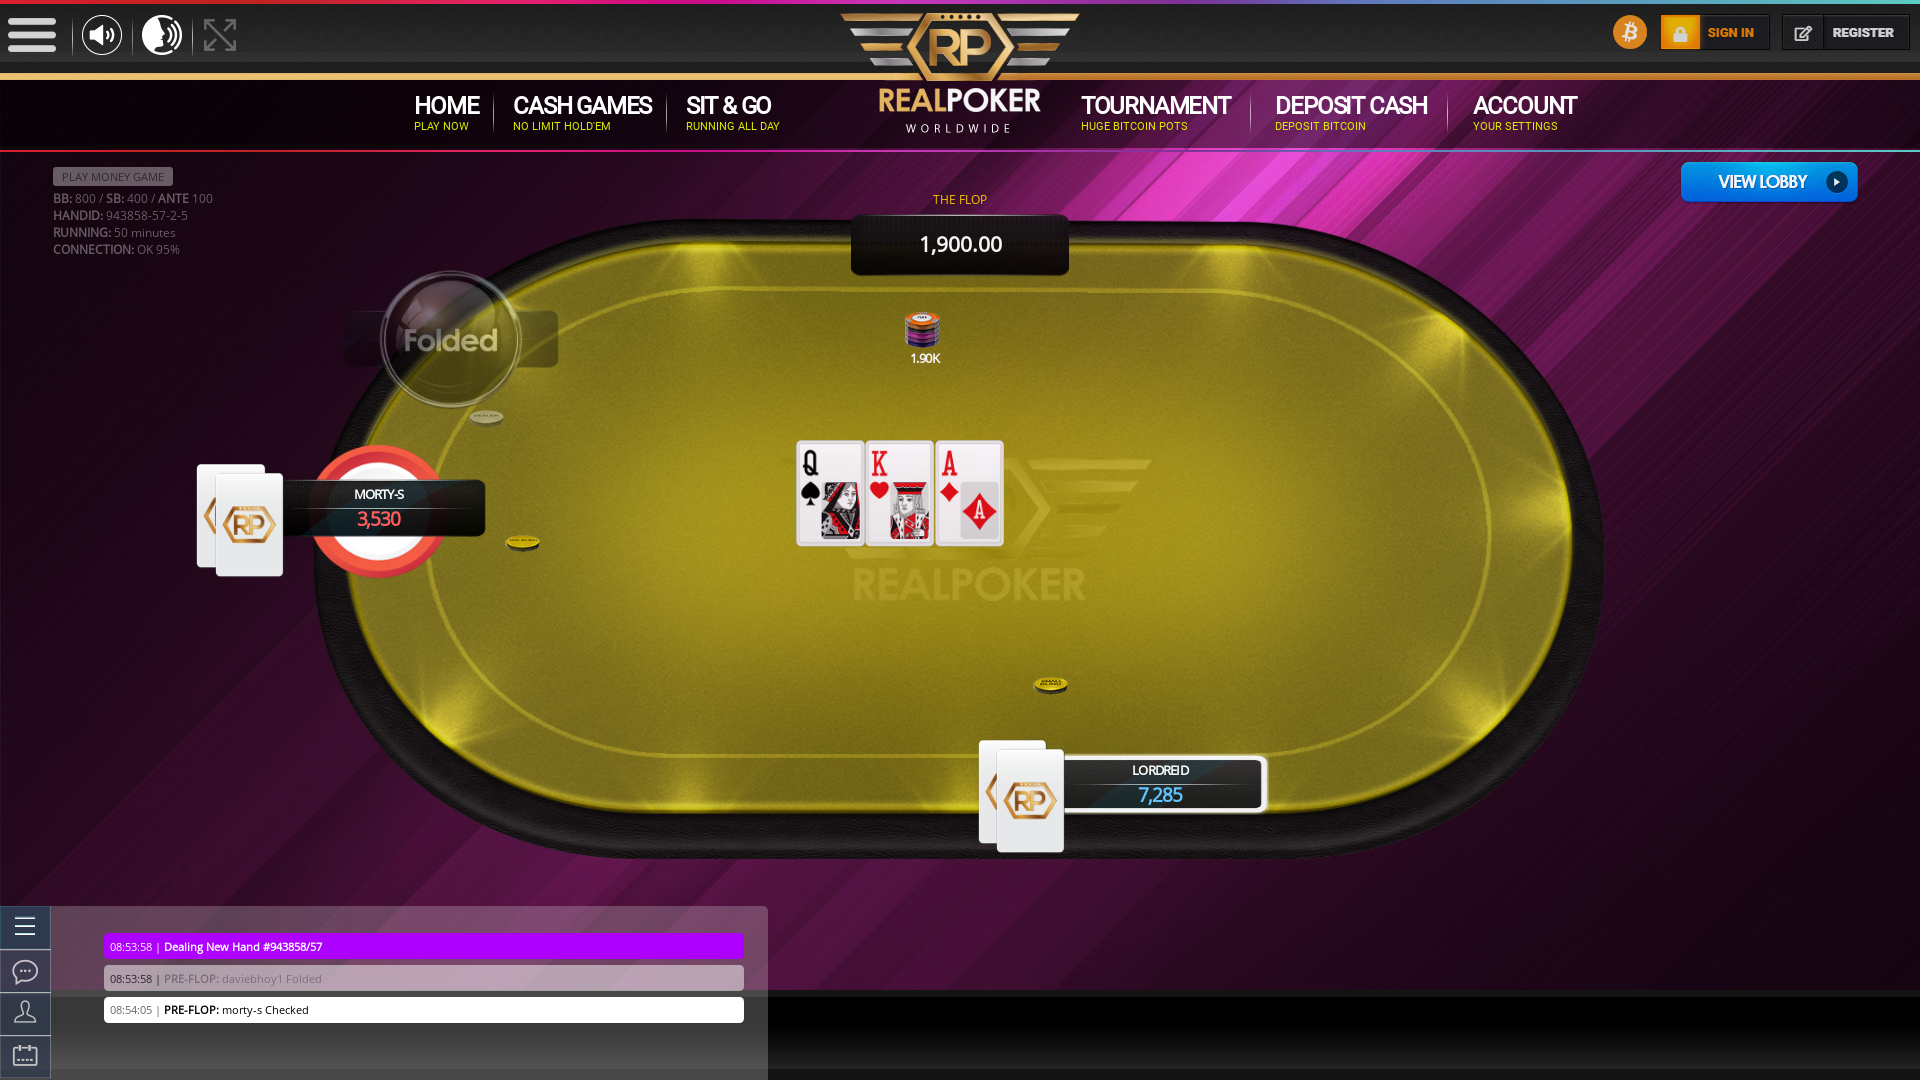 Online poker on a 10 player table in the 49th minute match up